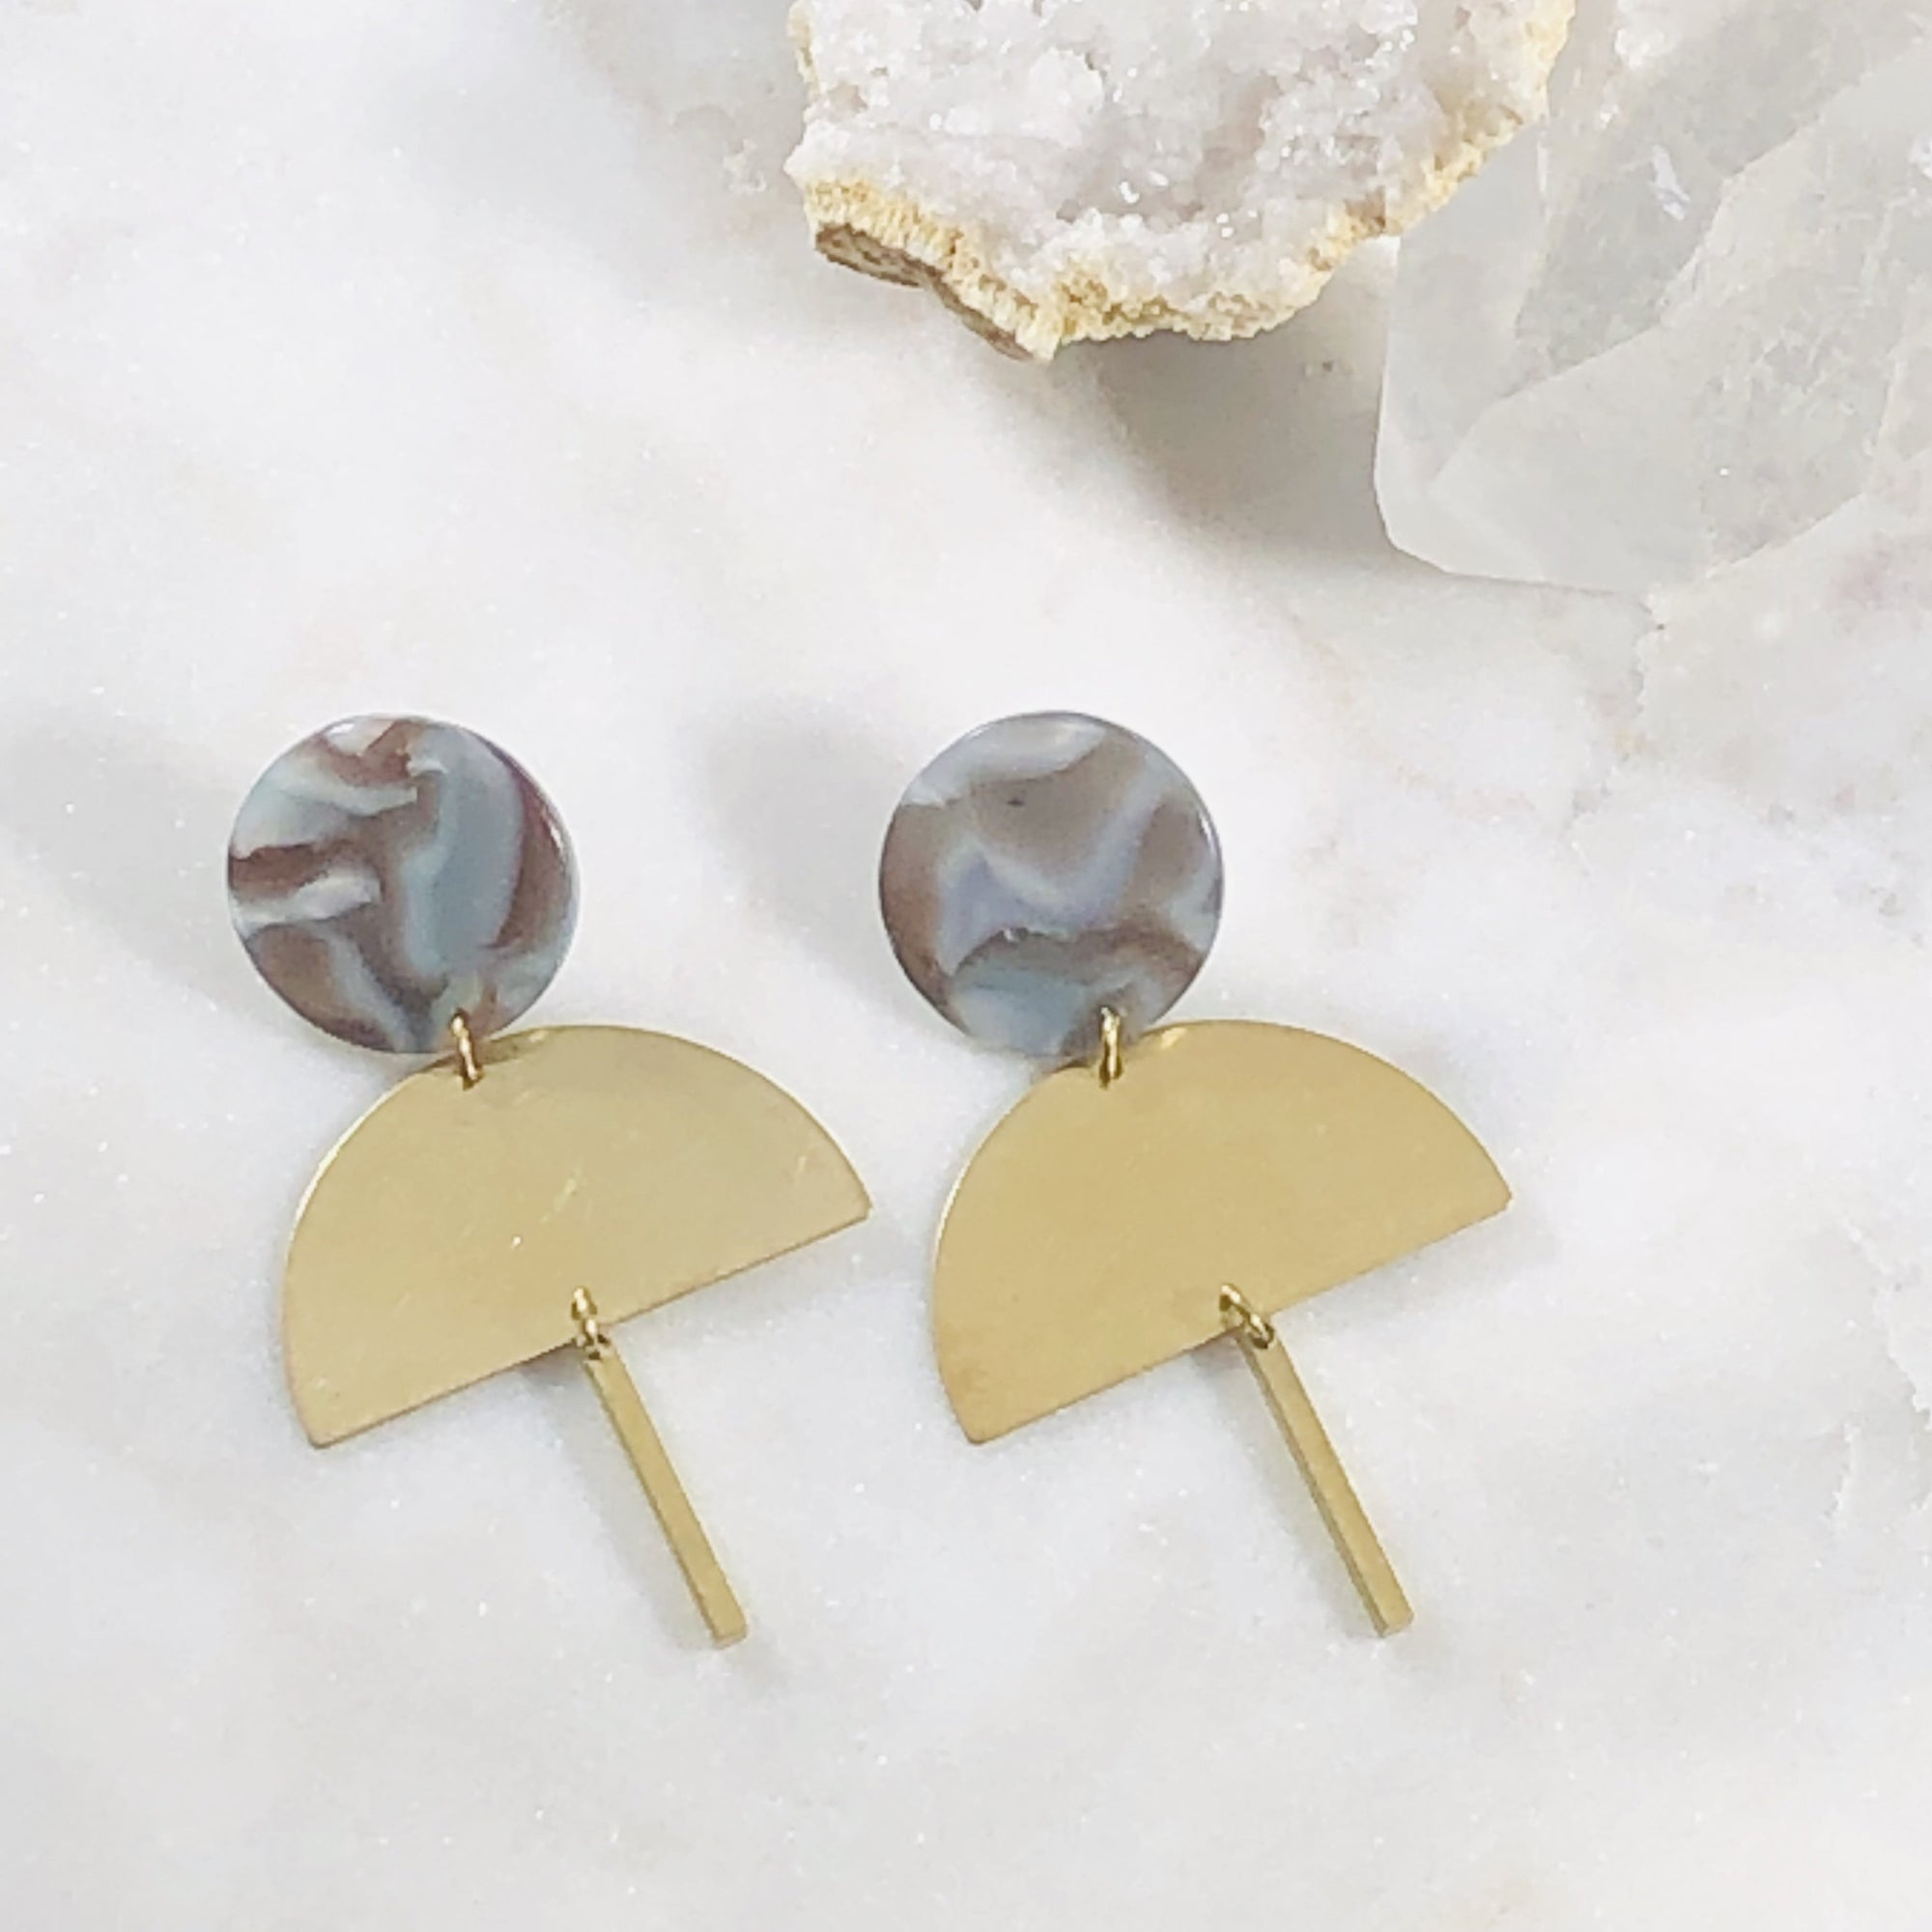 Handmade geometric brass and lucite  earrings for modern minimalist style